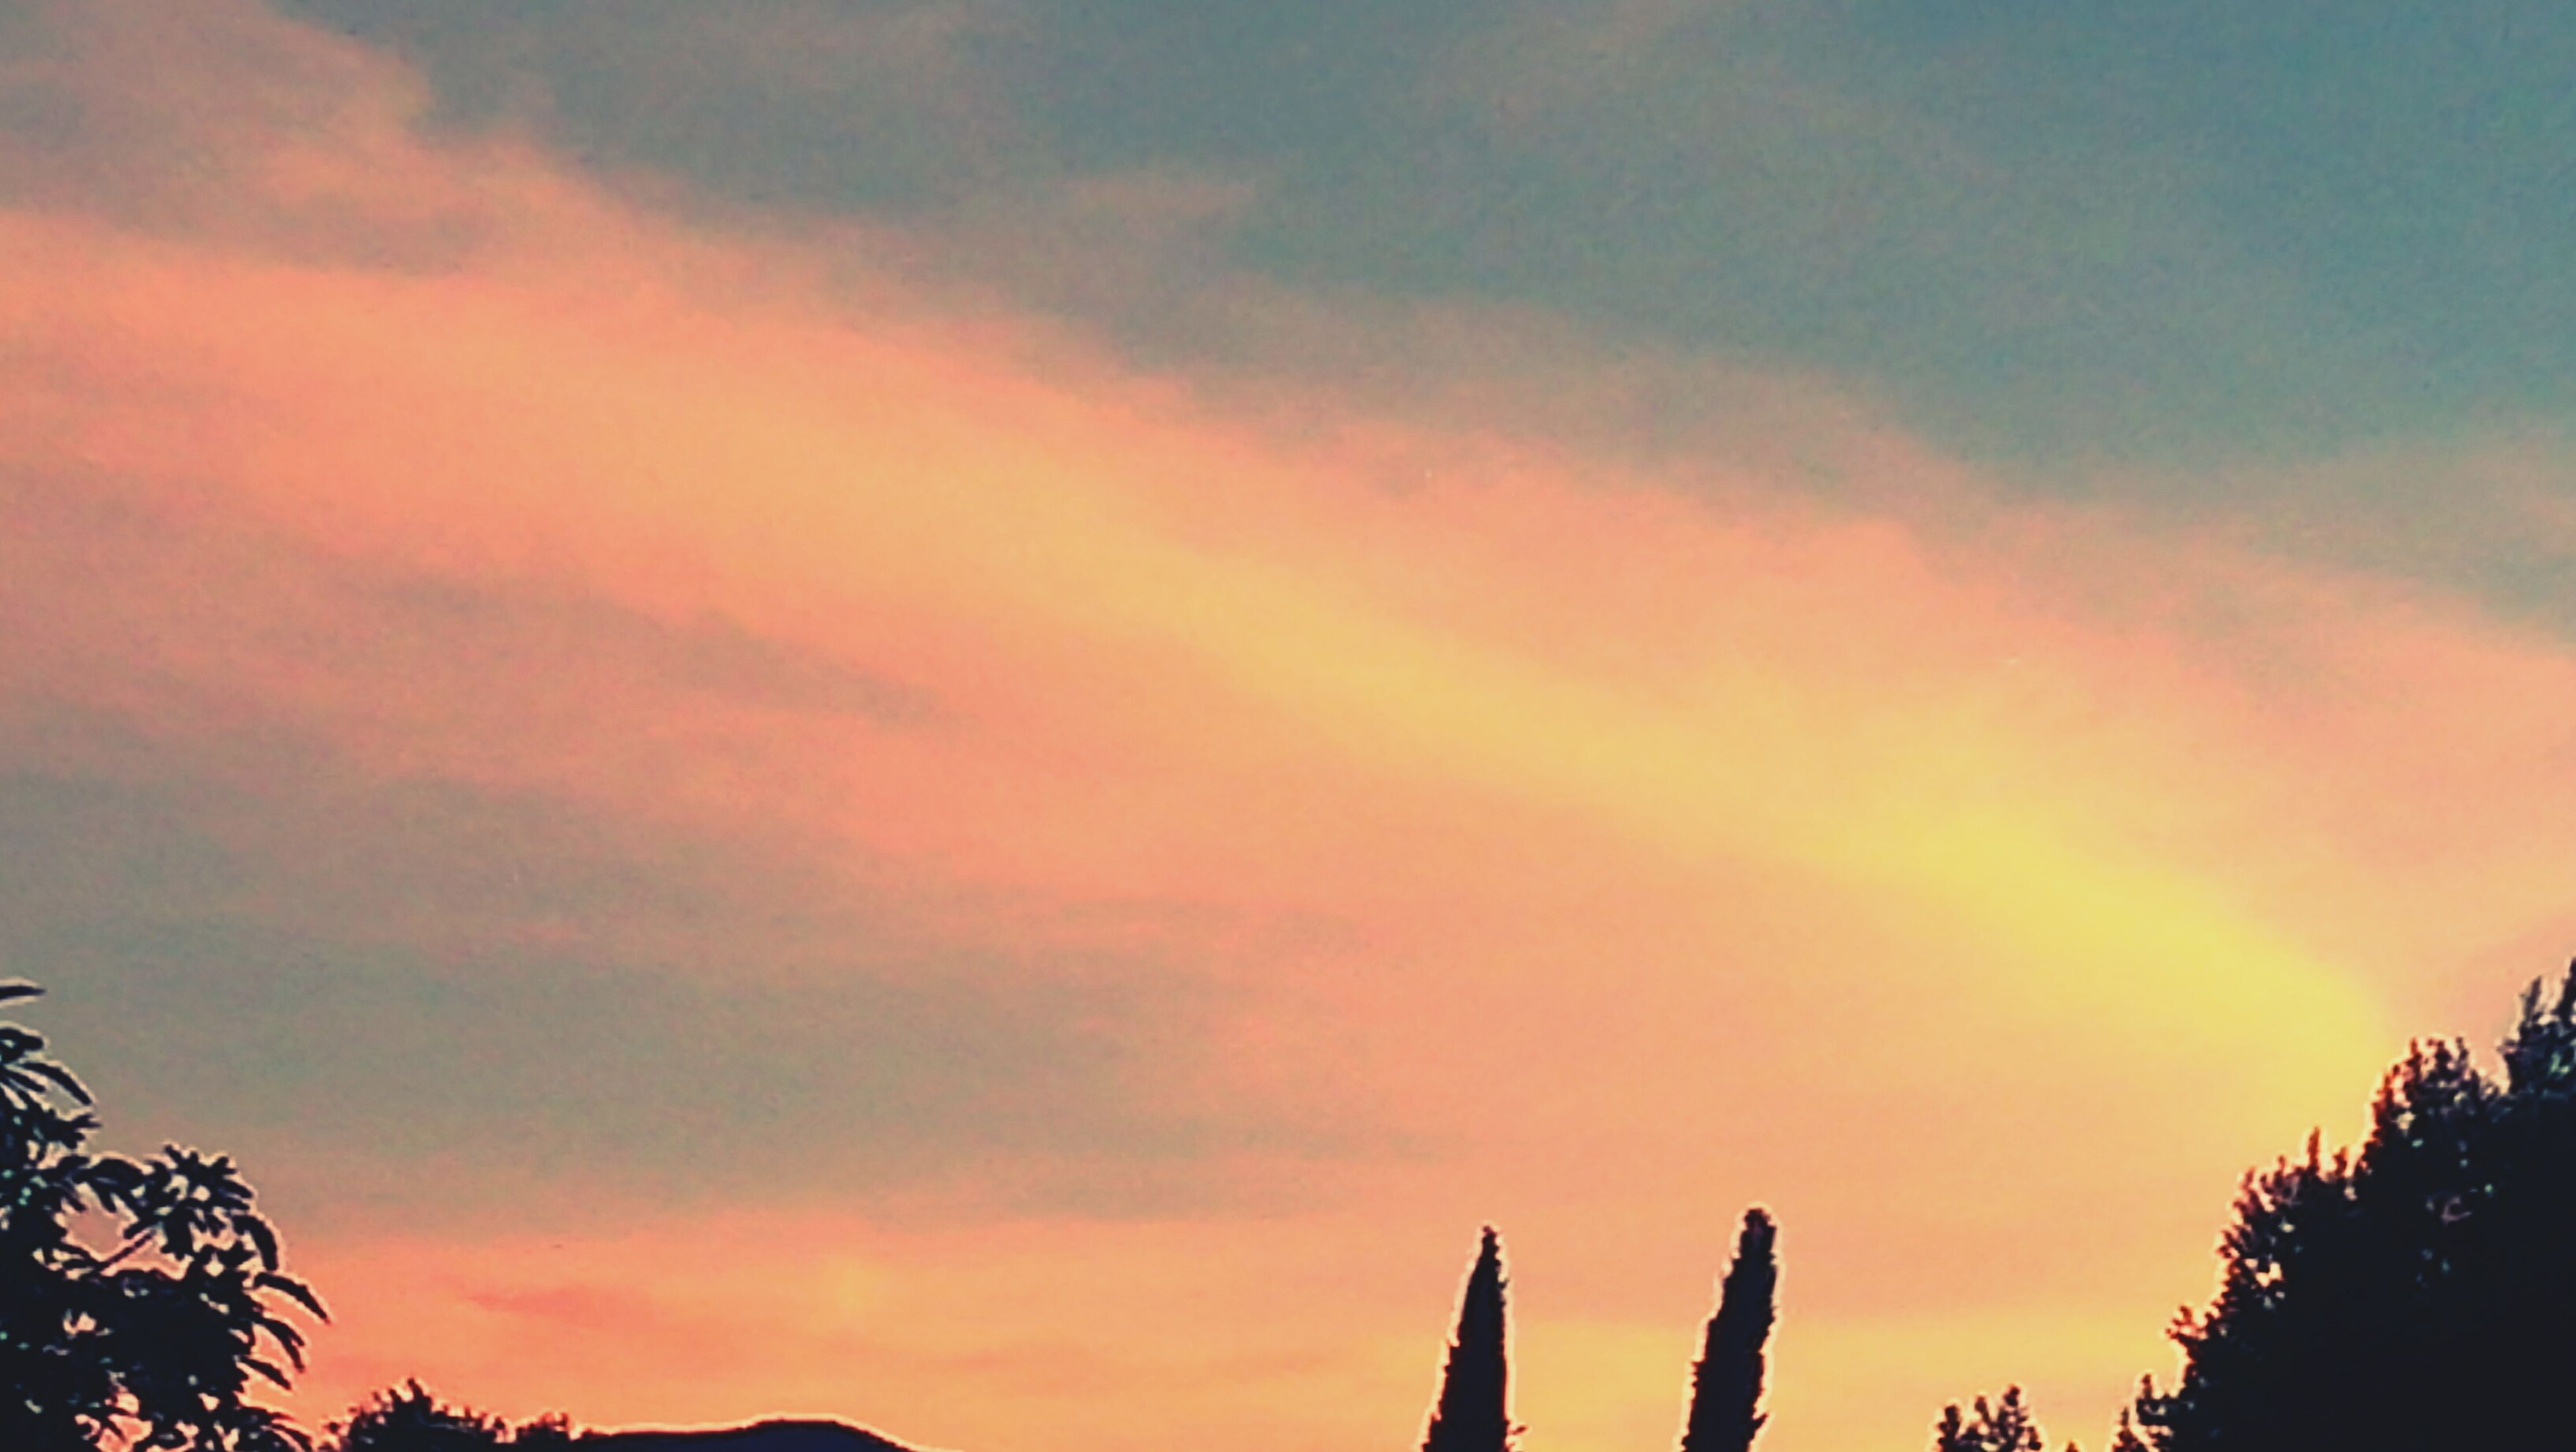 sunset, low angle view, sky, silhouette, orange color, cloud - sky, beauty in nature, tree, nature, scenics, tranquility, cloud, cloudy, high section, tranquil scene, outdoors, dramatic sky, no people, dusk, idyllic